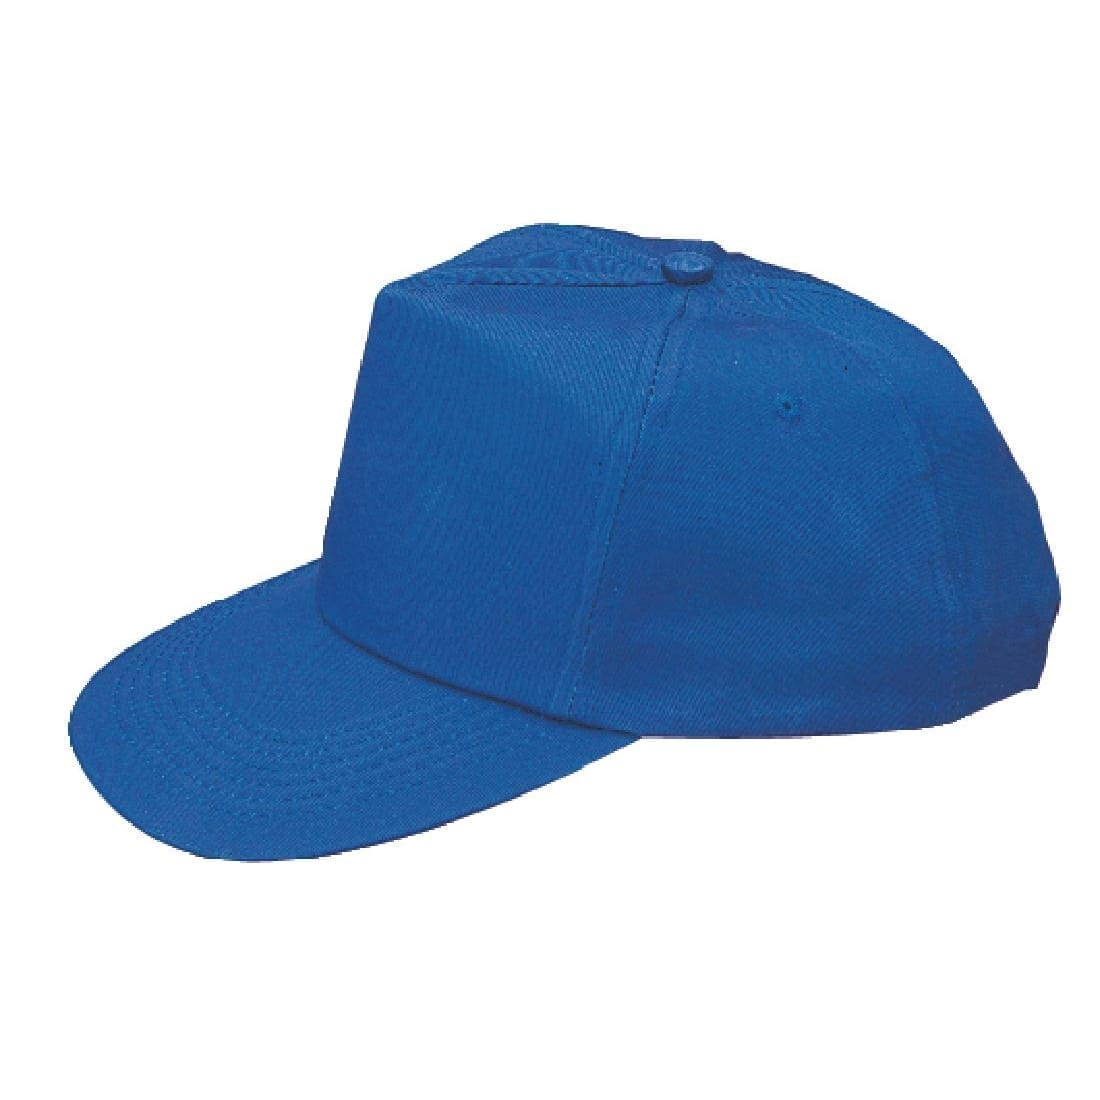 Baseball Cap Cotton Blue-0